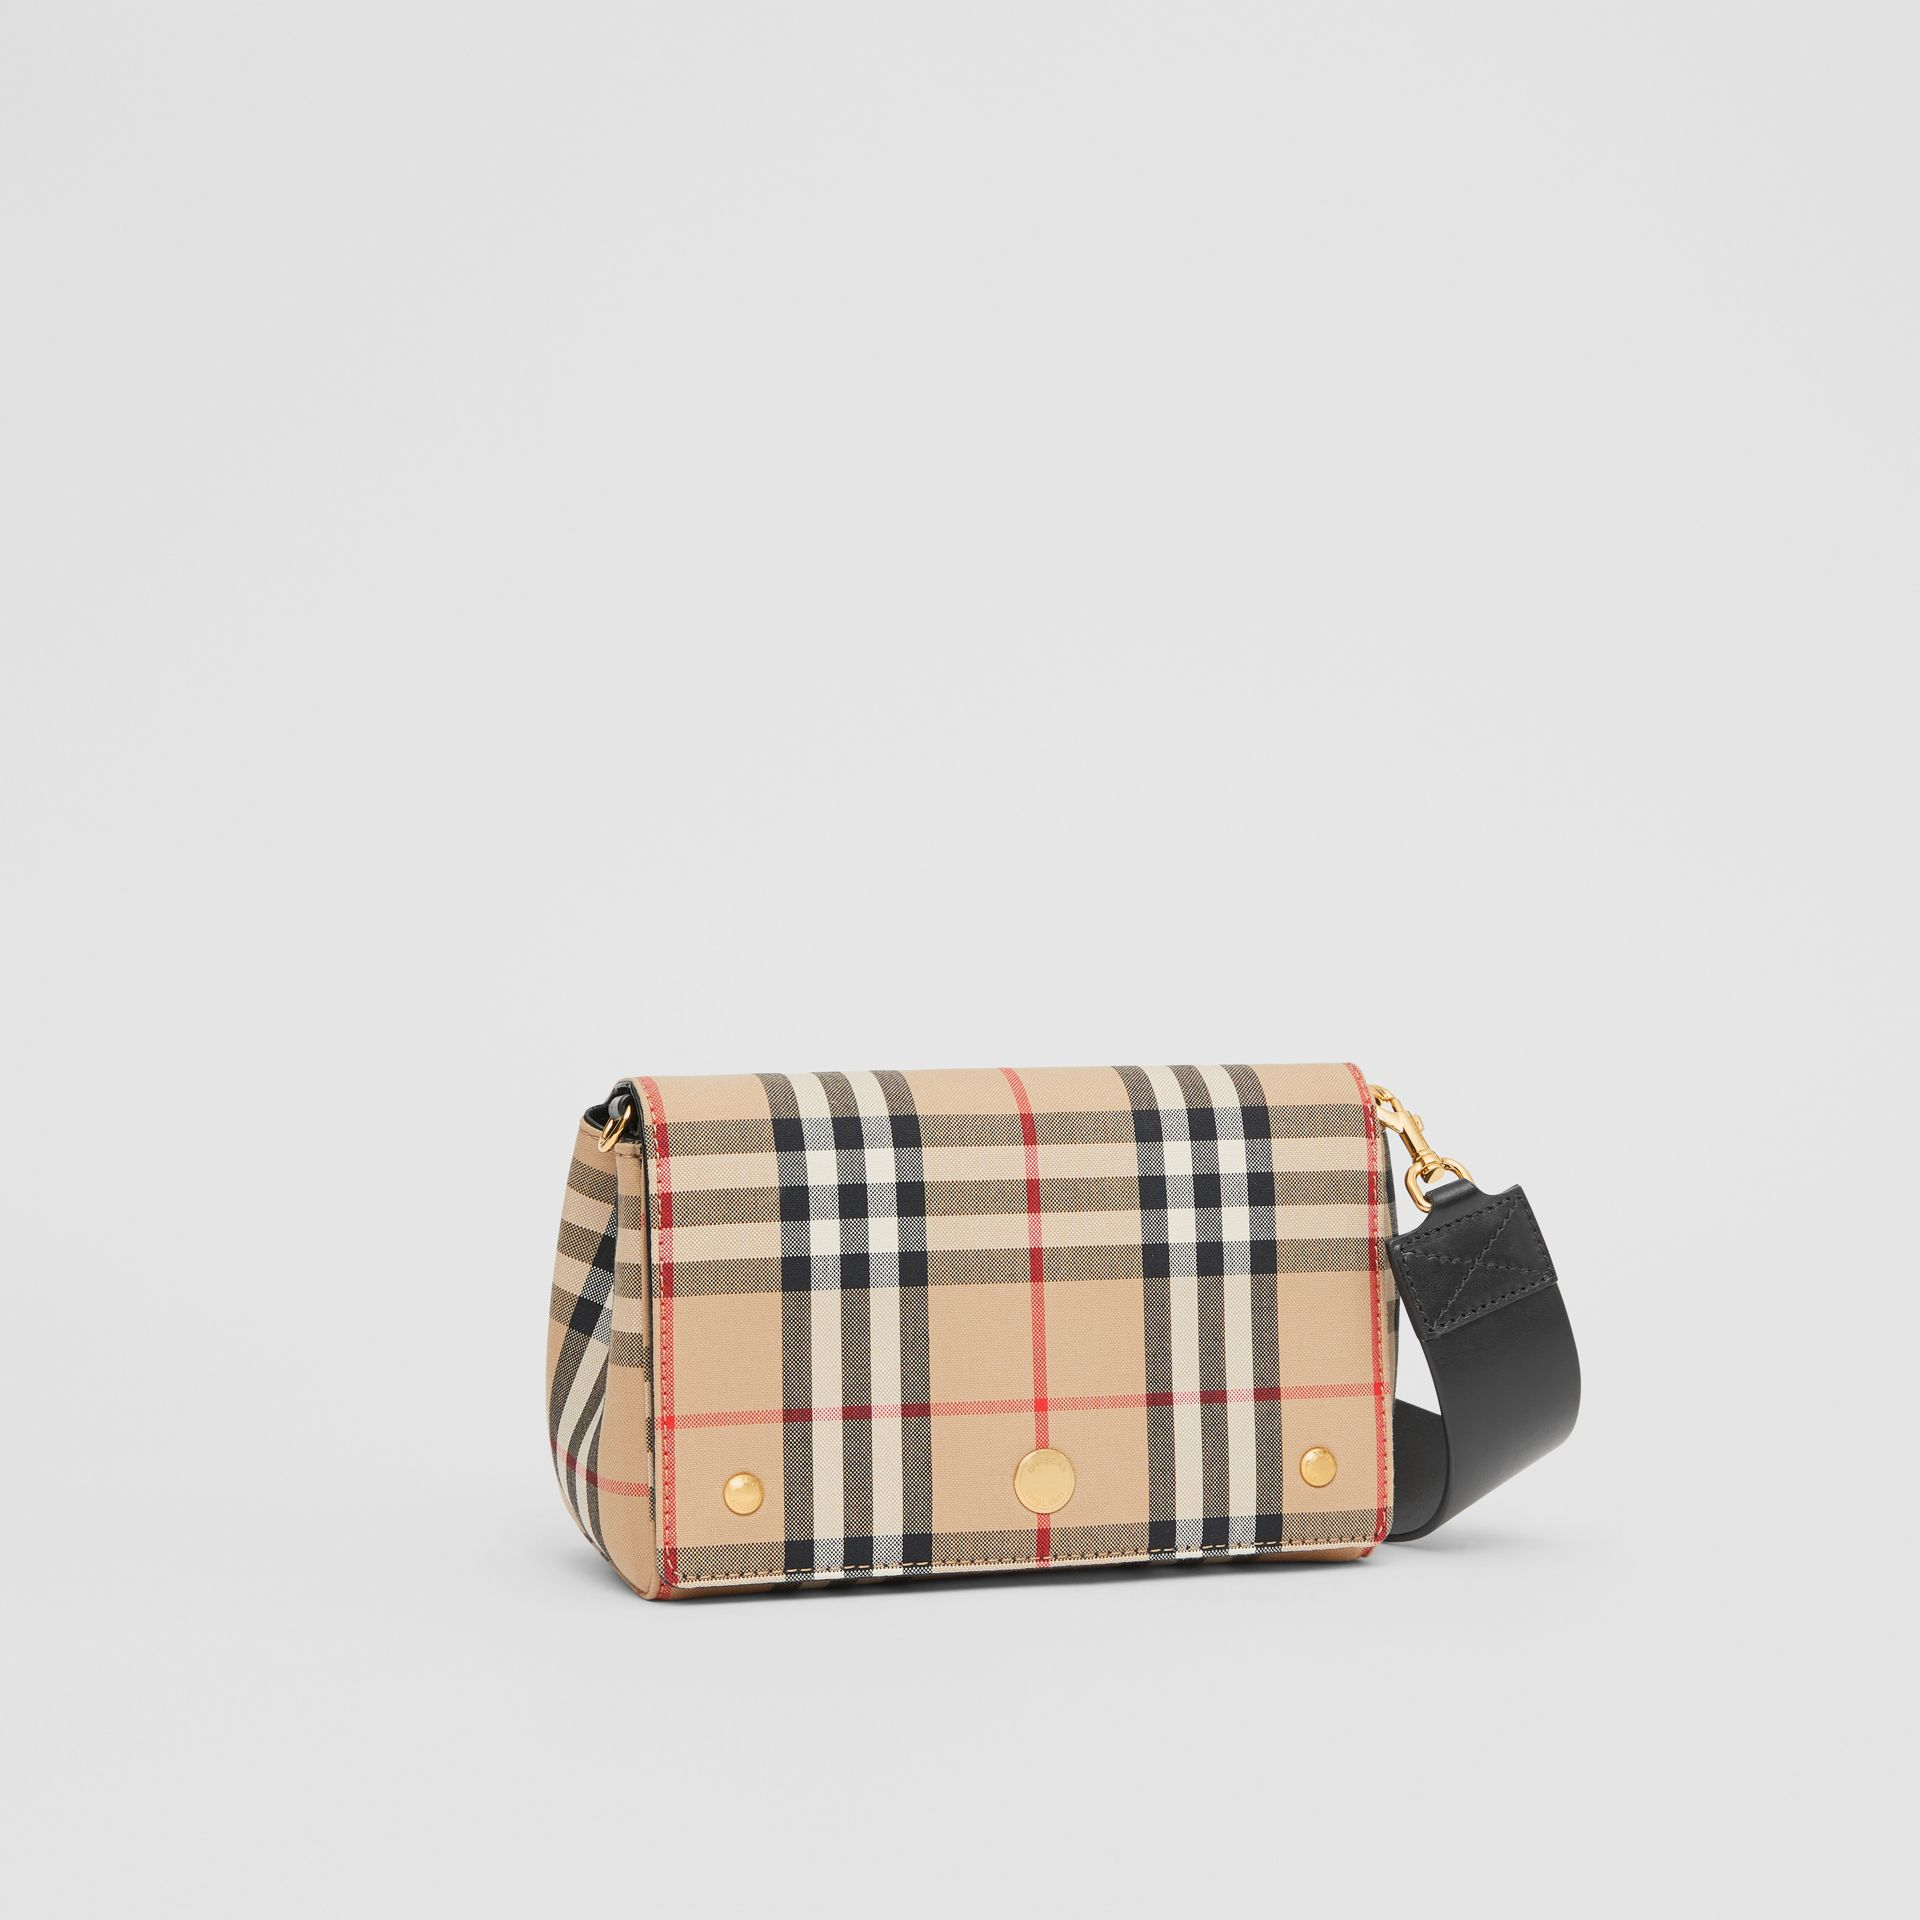 Vintage Check and Leather Note Crossbody Bag in Archive Beige/black | Burberry United Kingdom - gallery image 6